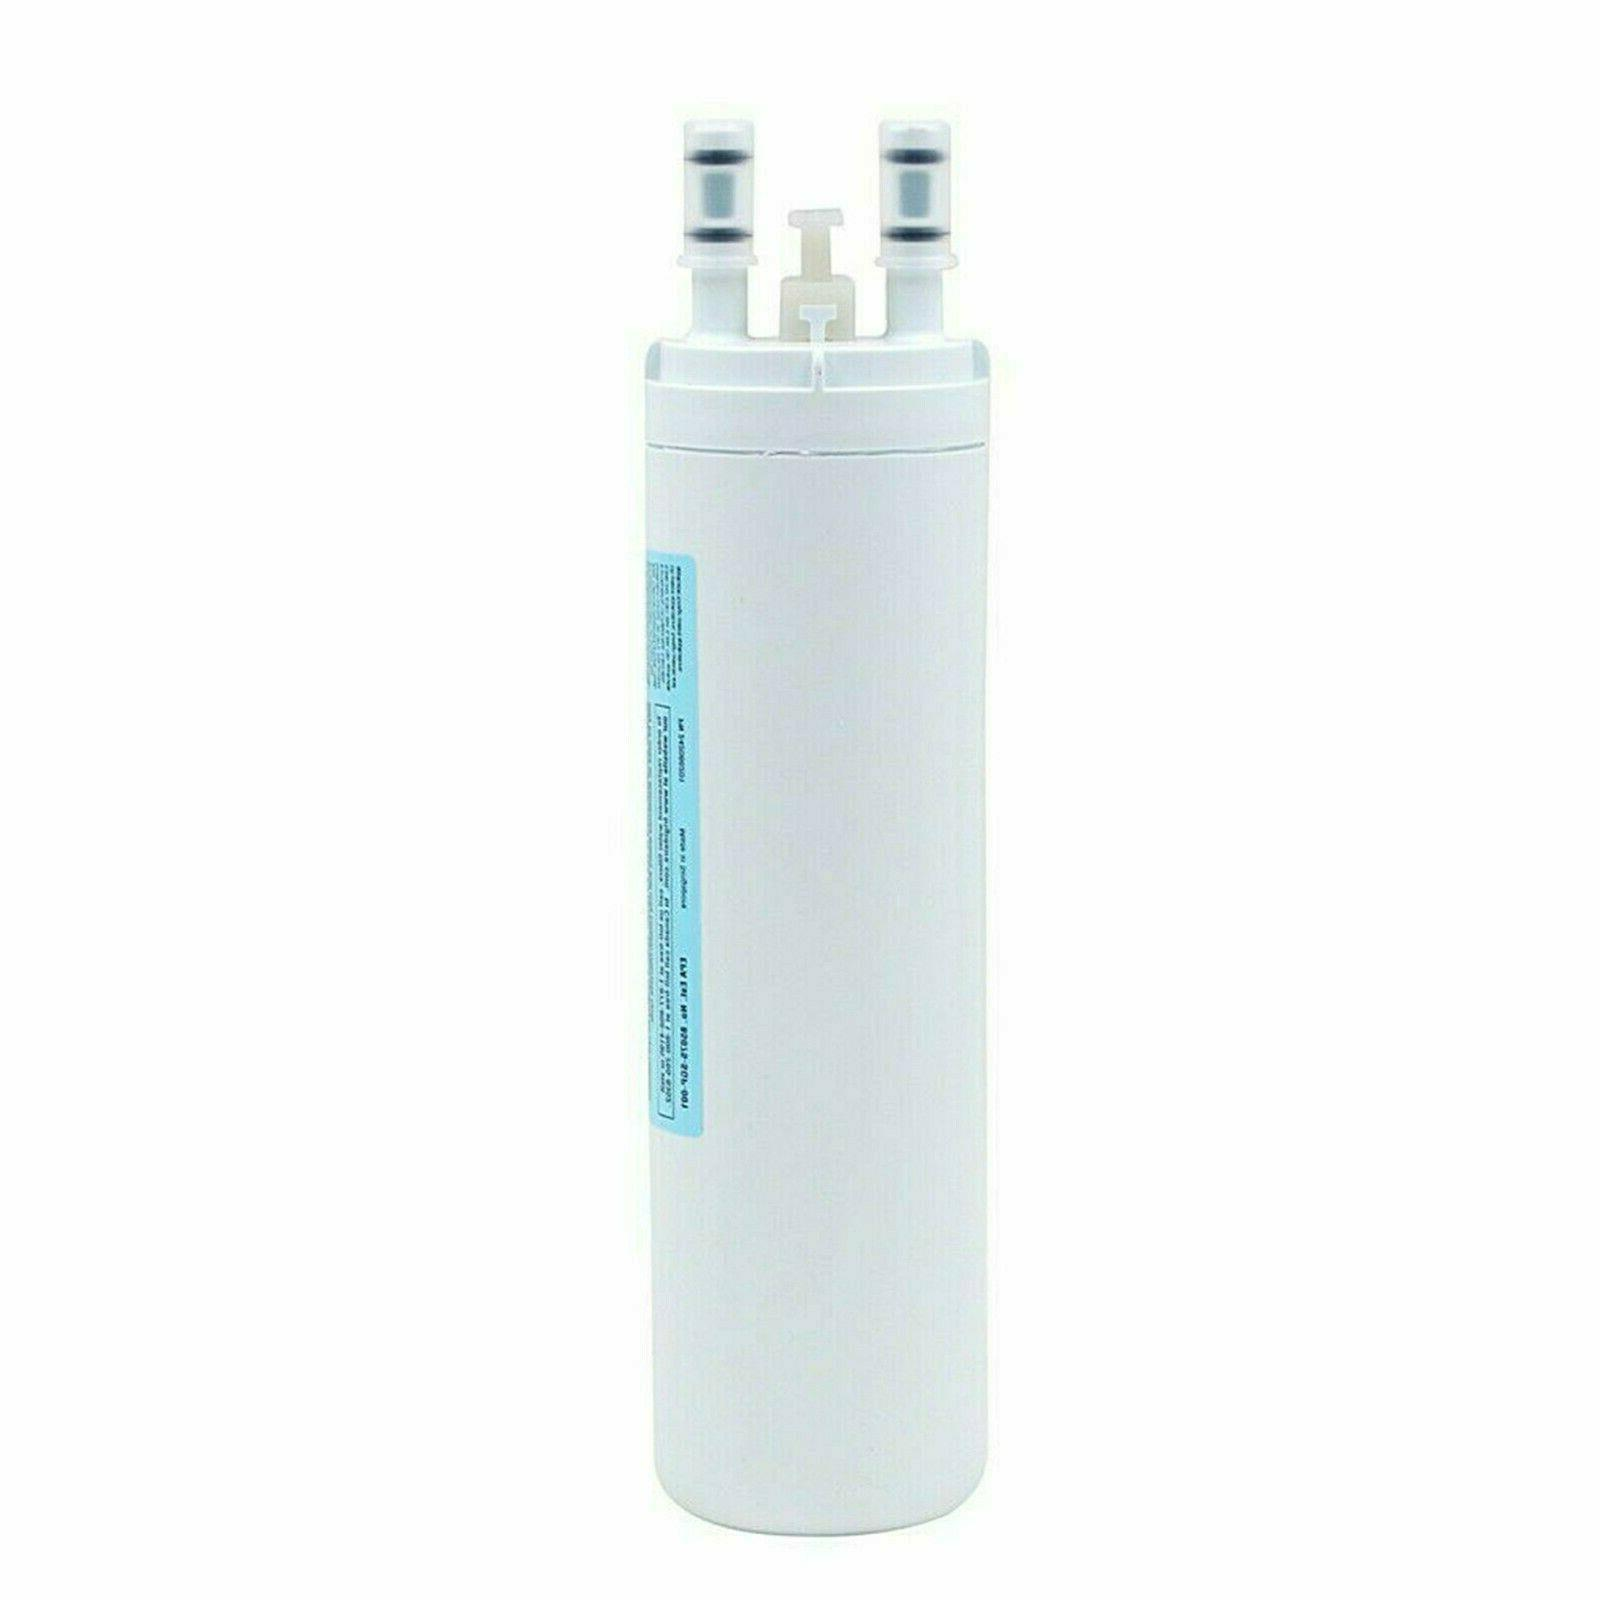 1Pack fits WF3CB Pure-Source 3 Refrigerator Replacement Filter